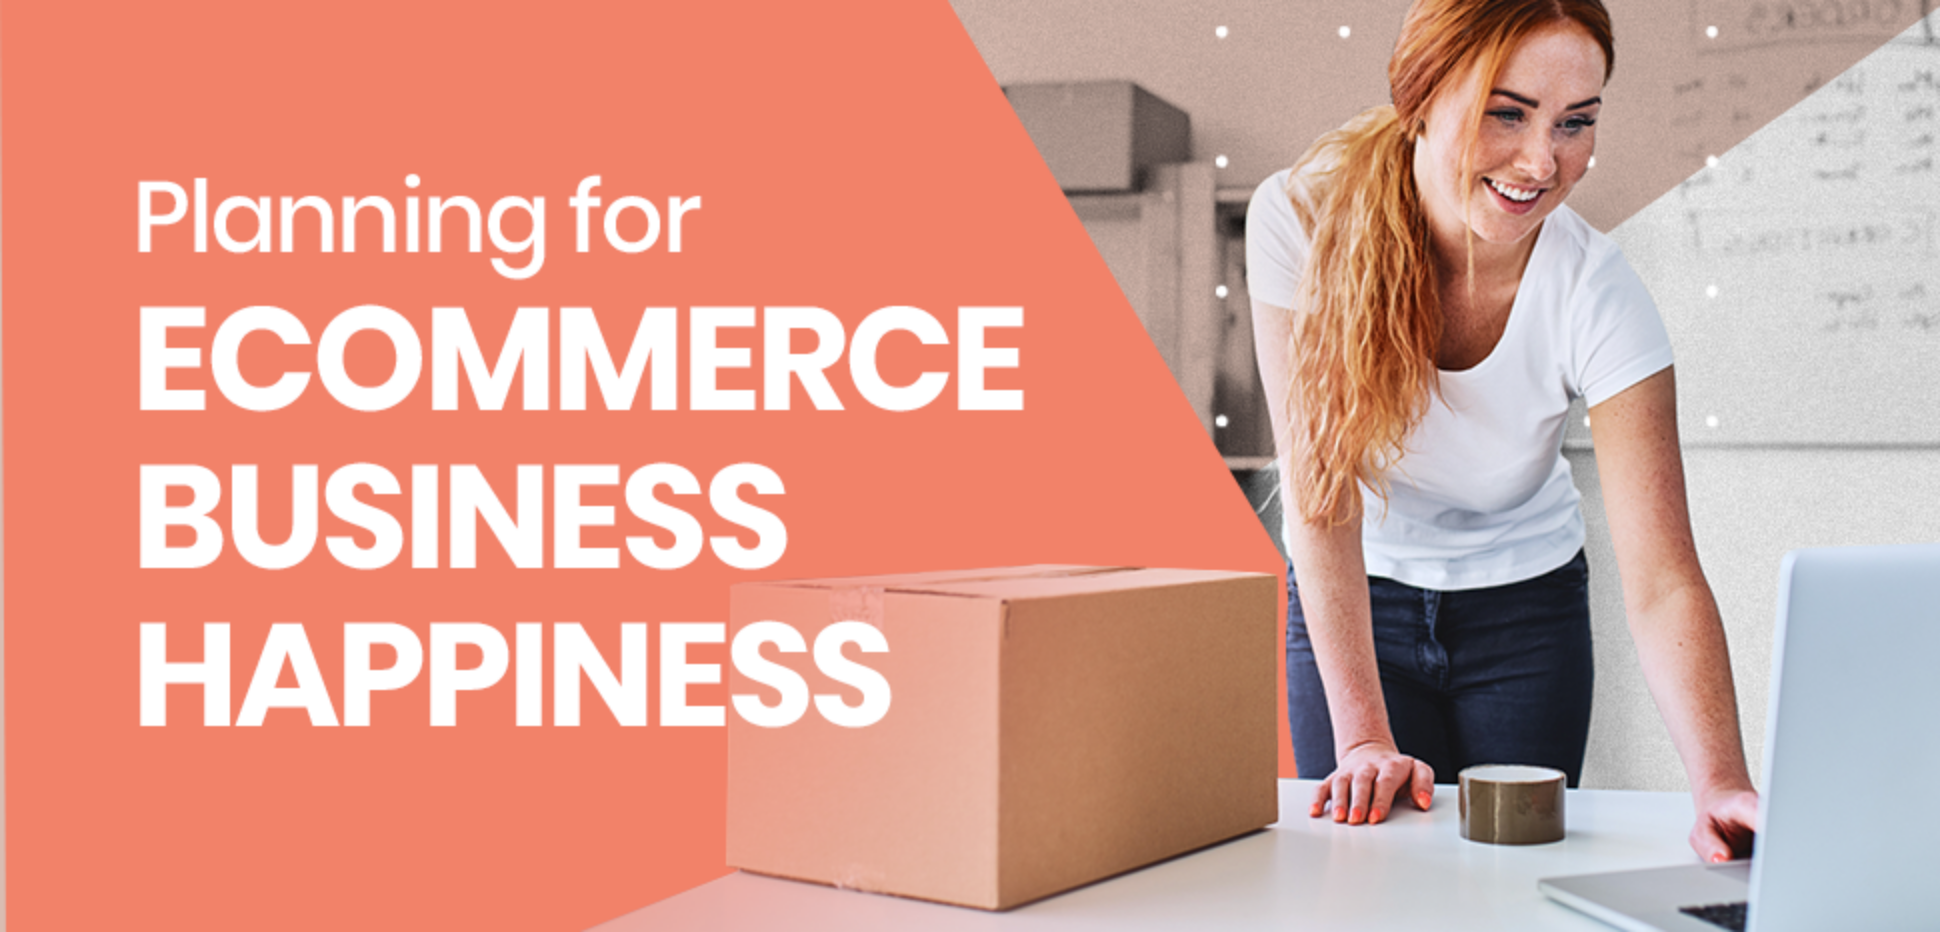 Planning for eCommerce business happiness